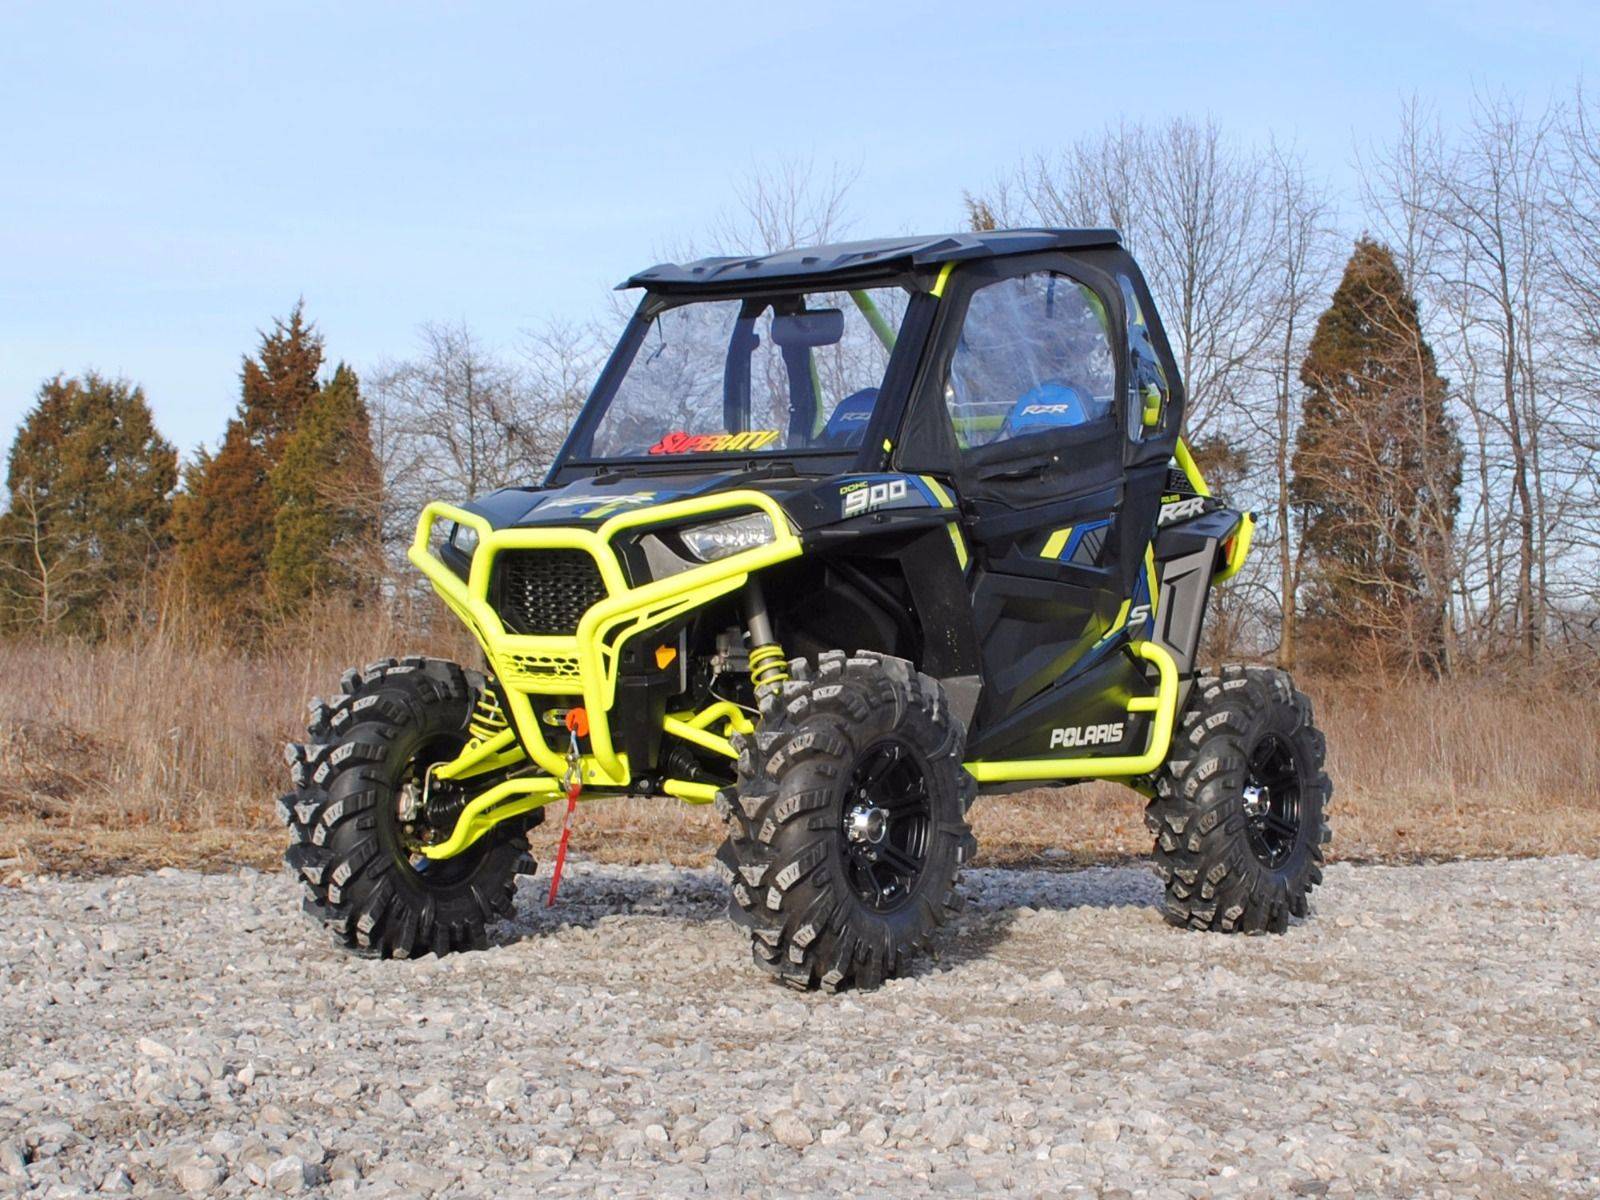 3 Inch Lift Kit >> 3 Inch Lift Kit For Rzr S 900 By Super Atv